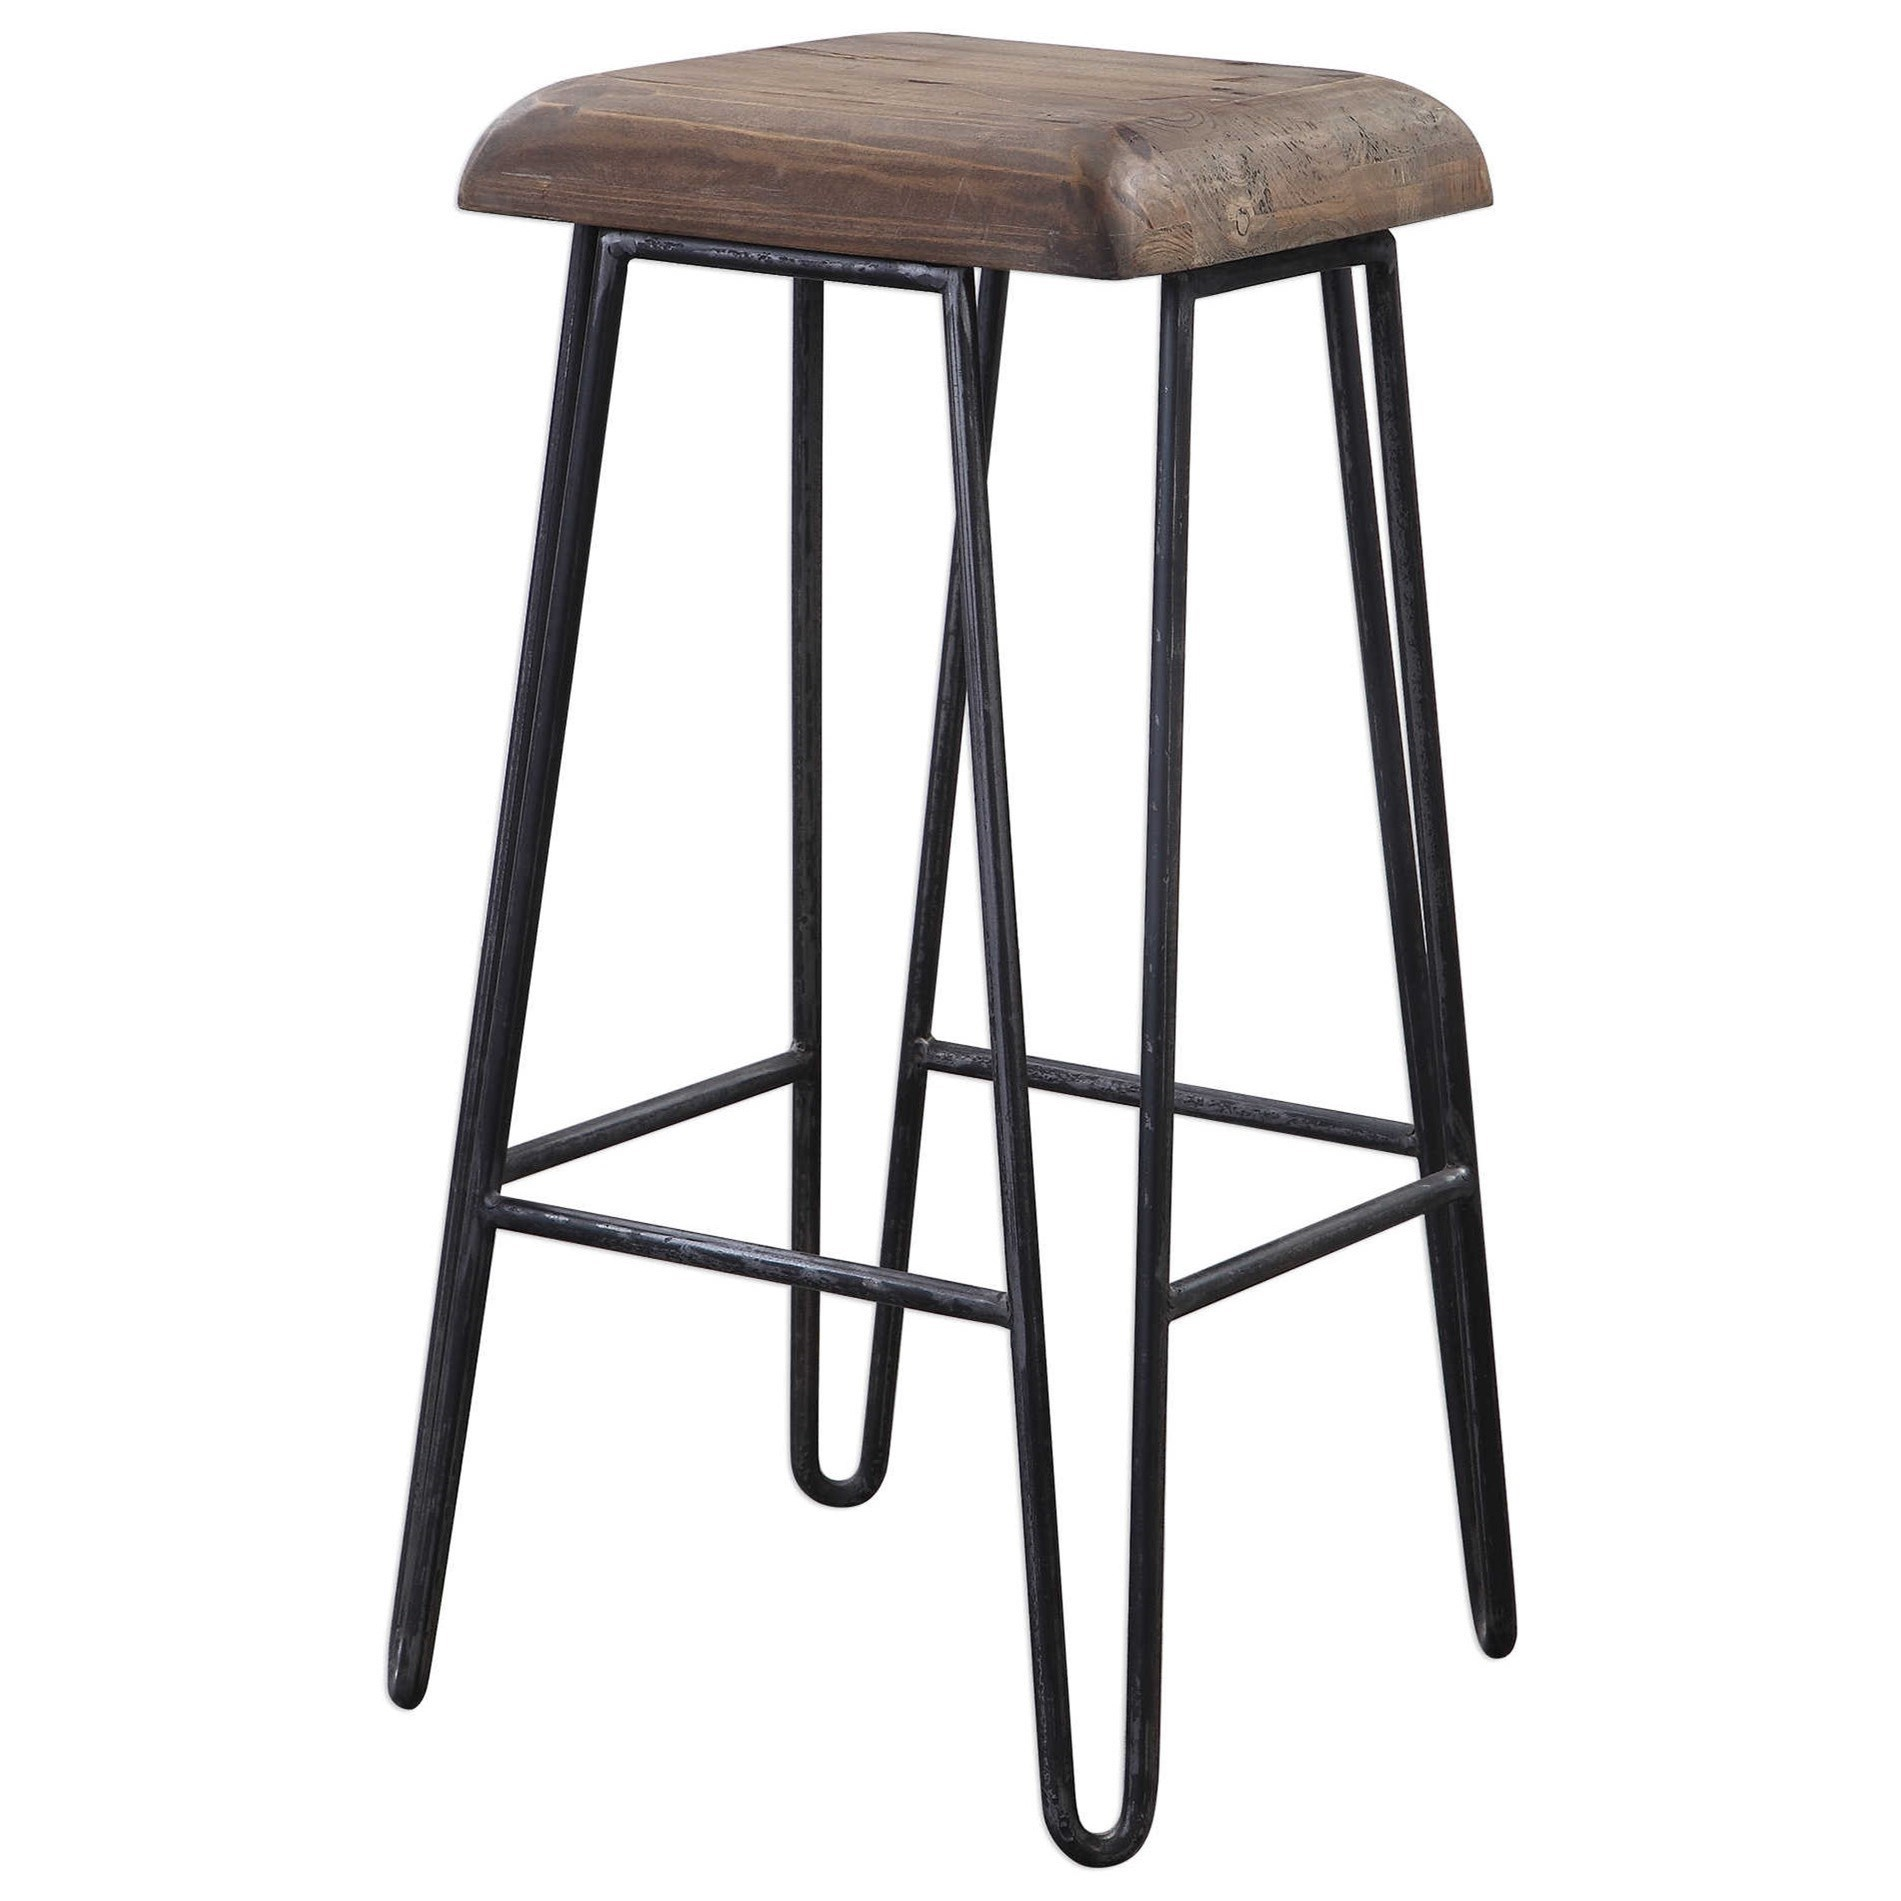 Accent Furniture - Stools Albie Industrial Bar Stool by Uttermost at Factory Direct Furniture